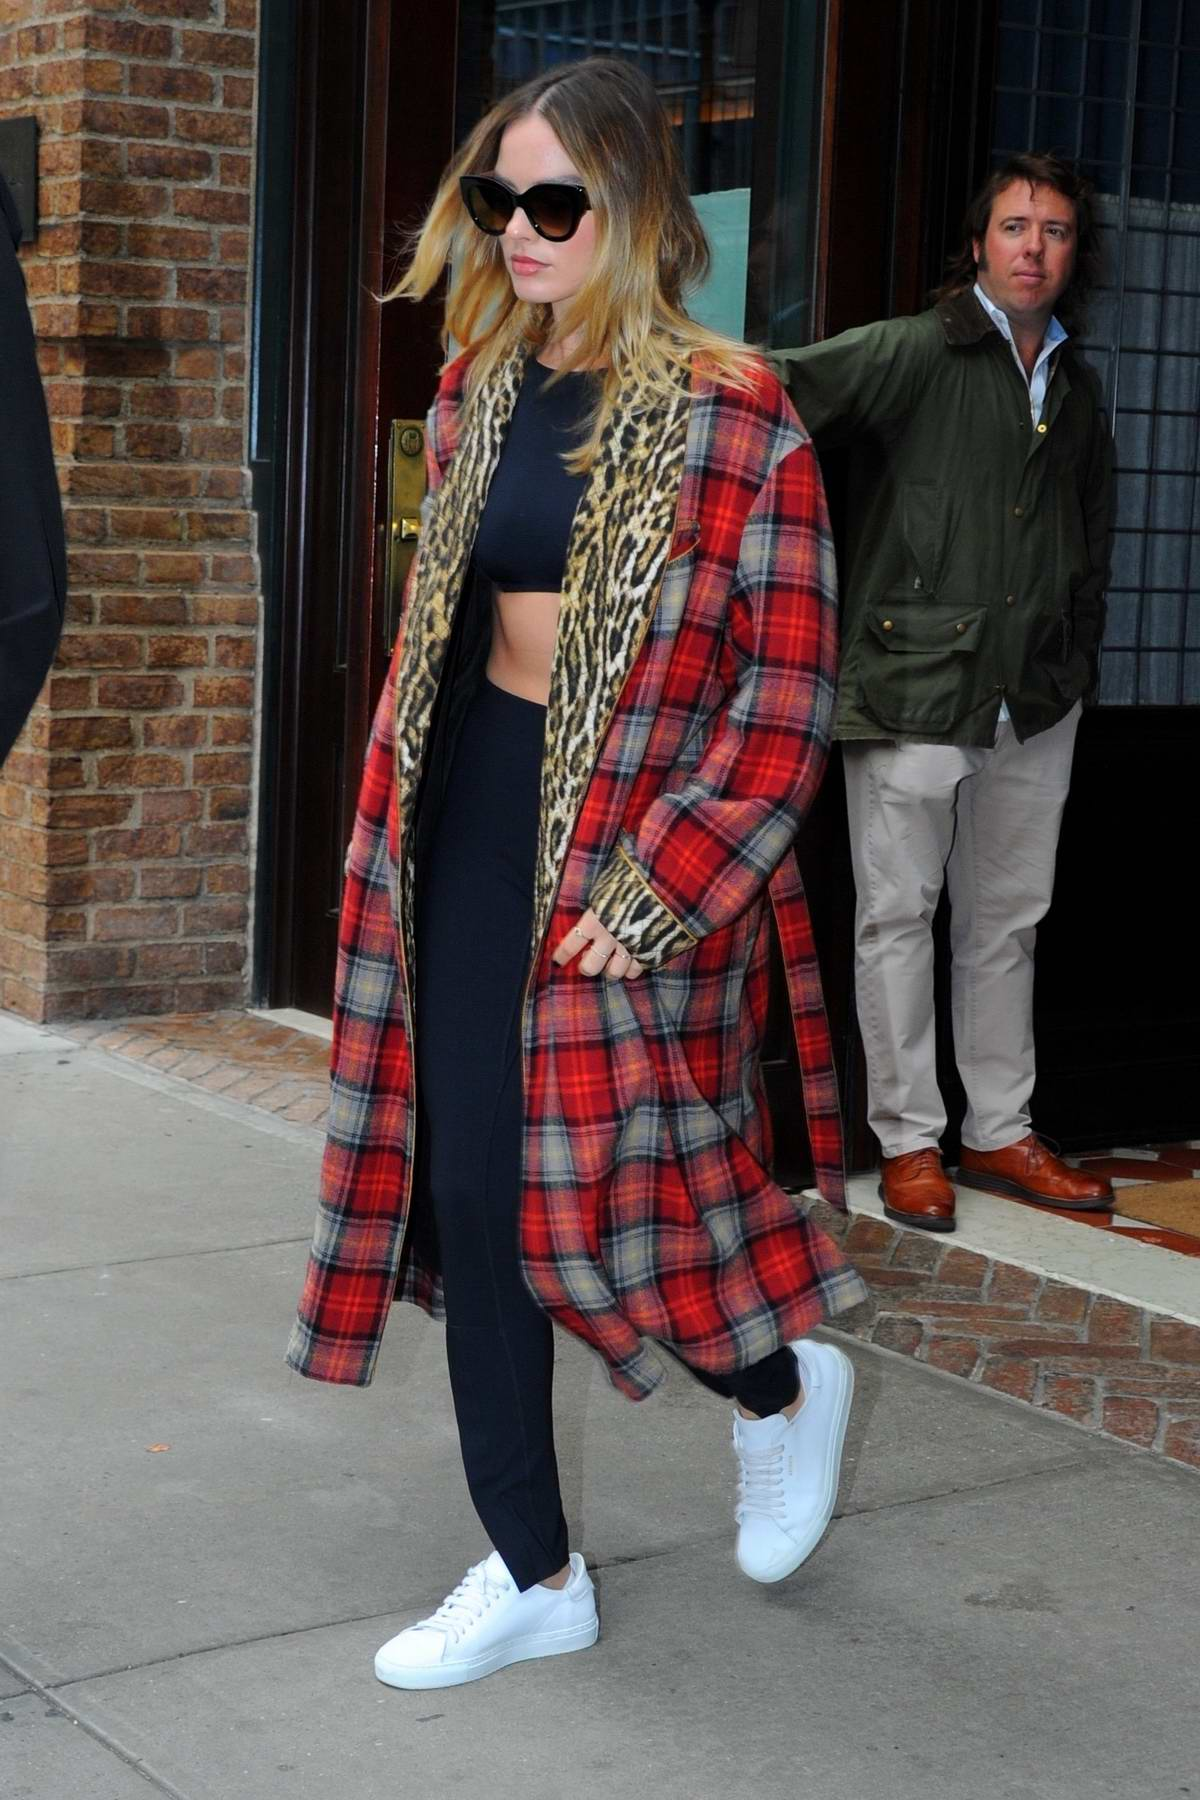 Margot Robbie wears a plaid overcoat over a black crop top and leggings as she leaves her hotel in New York City